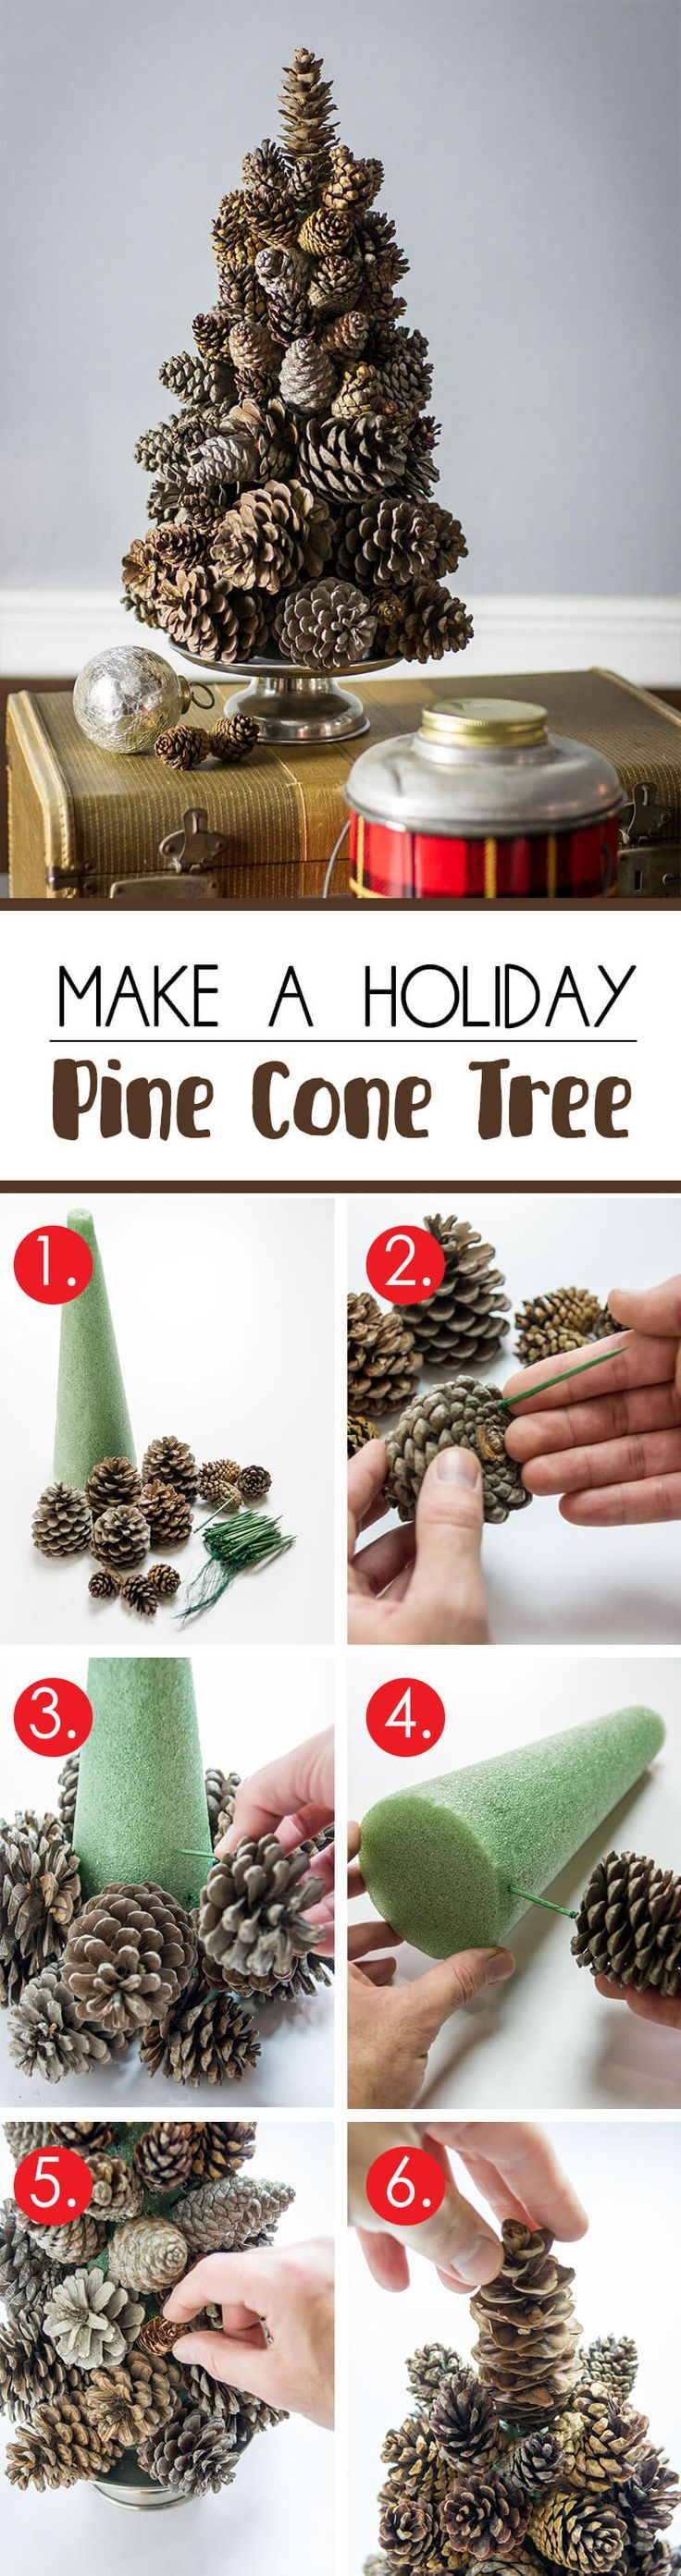 Photo of 35+ Beautiful DIY Pine Cone Crafts to Enjoy Making the Holiday Decoration